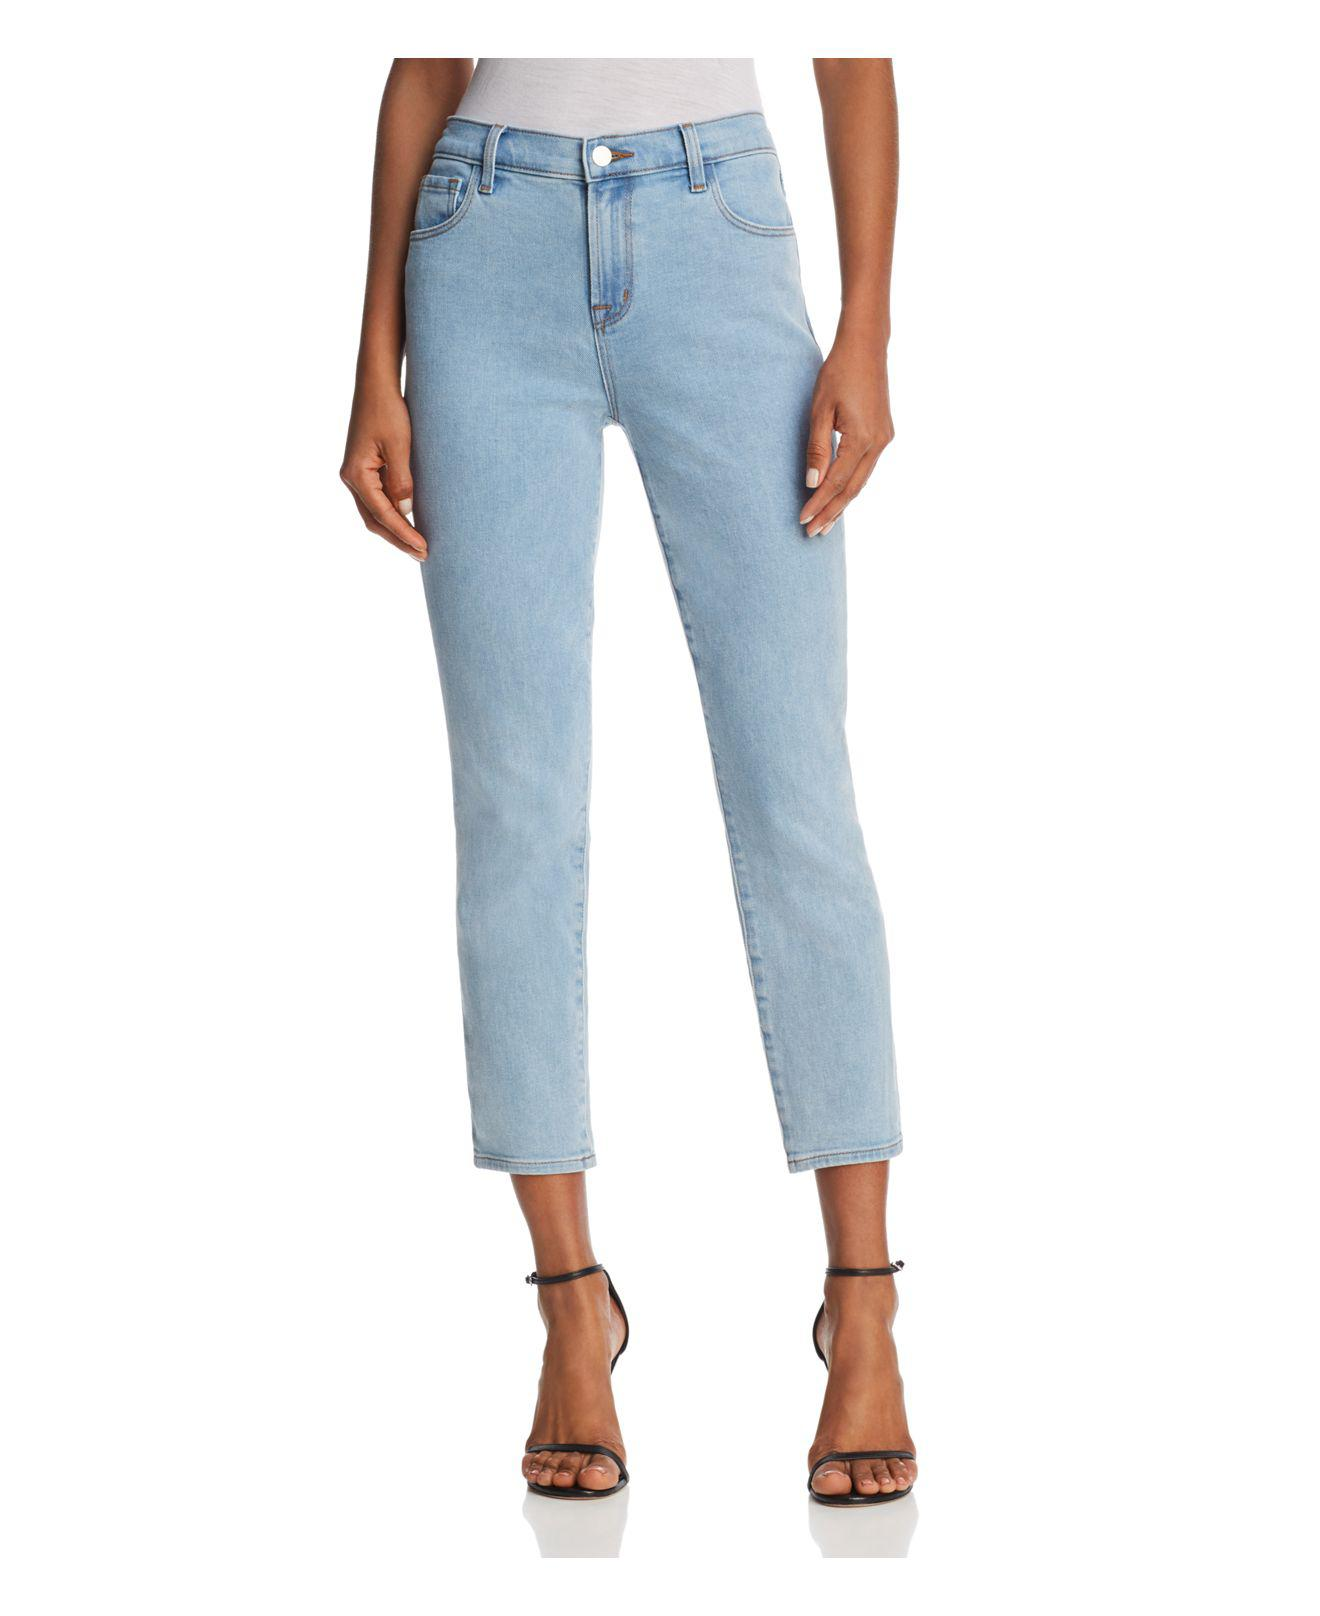 edc40b4e7bb7 Lyst - J Brand Ruby High-rise Cropped Straight Jeans In Silvery in Blue